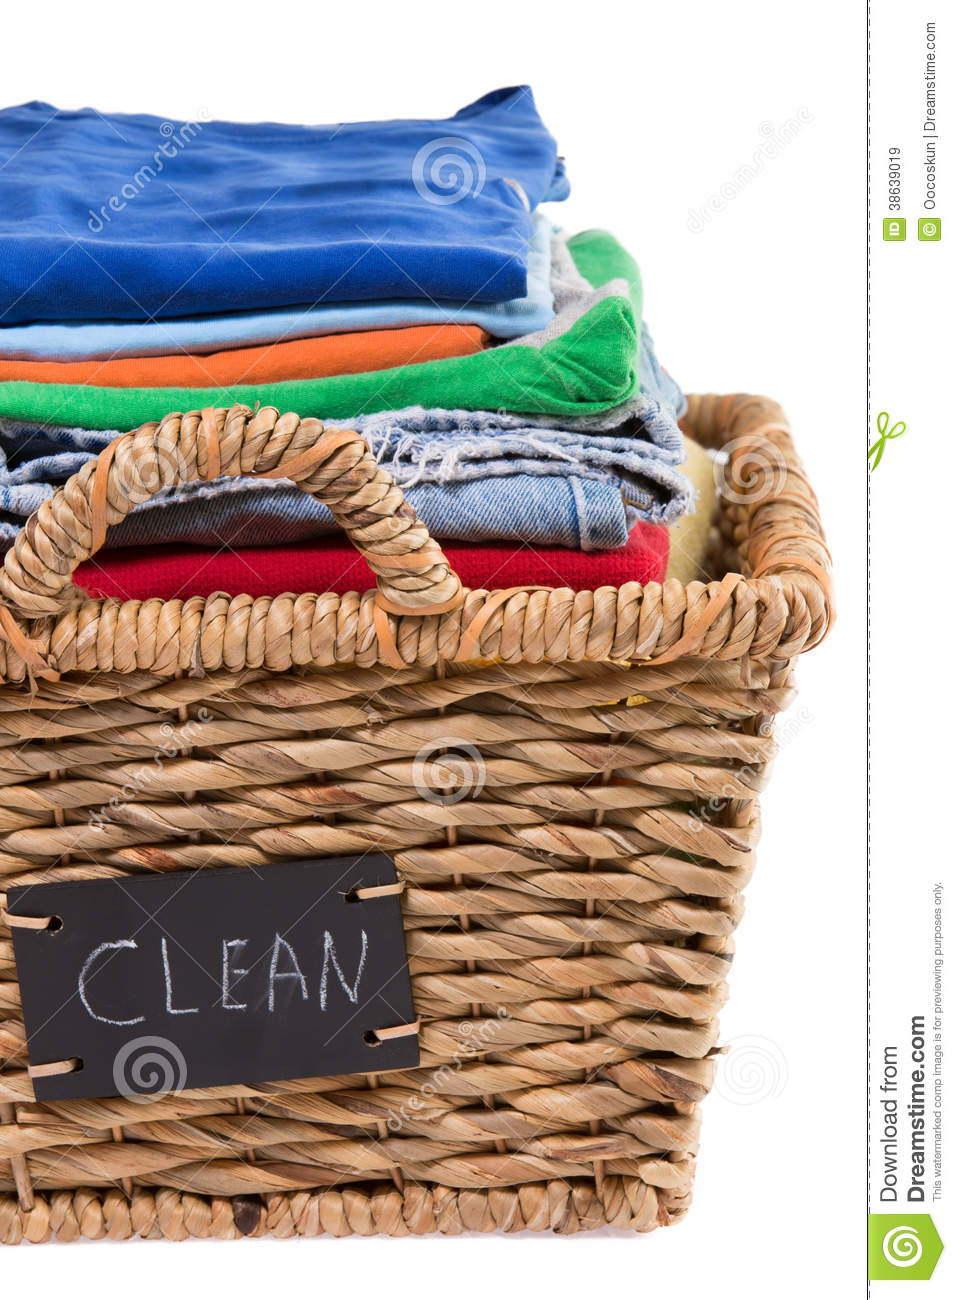 washed fresh clean clothes in a laundry basket stock image